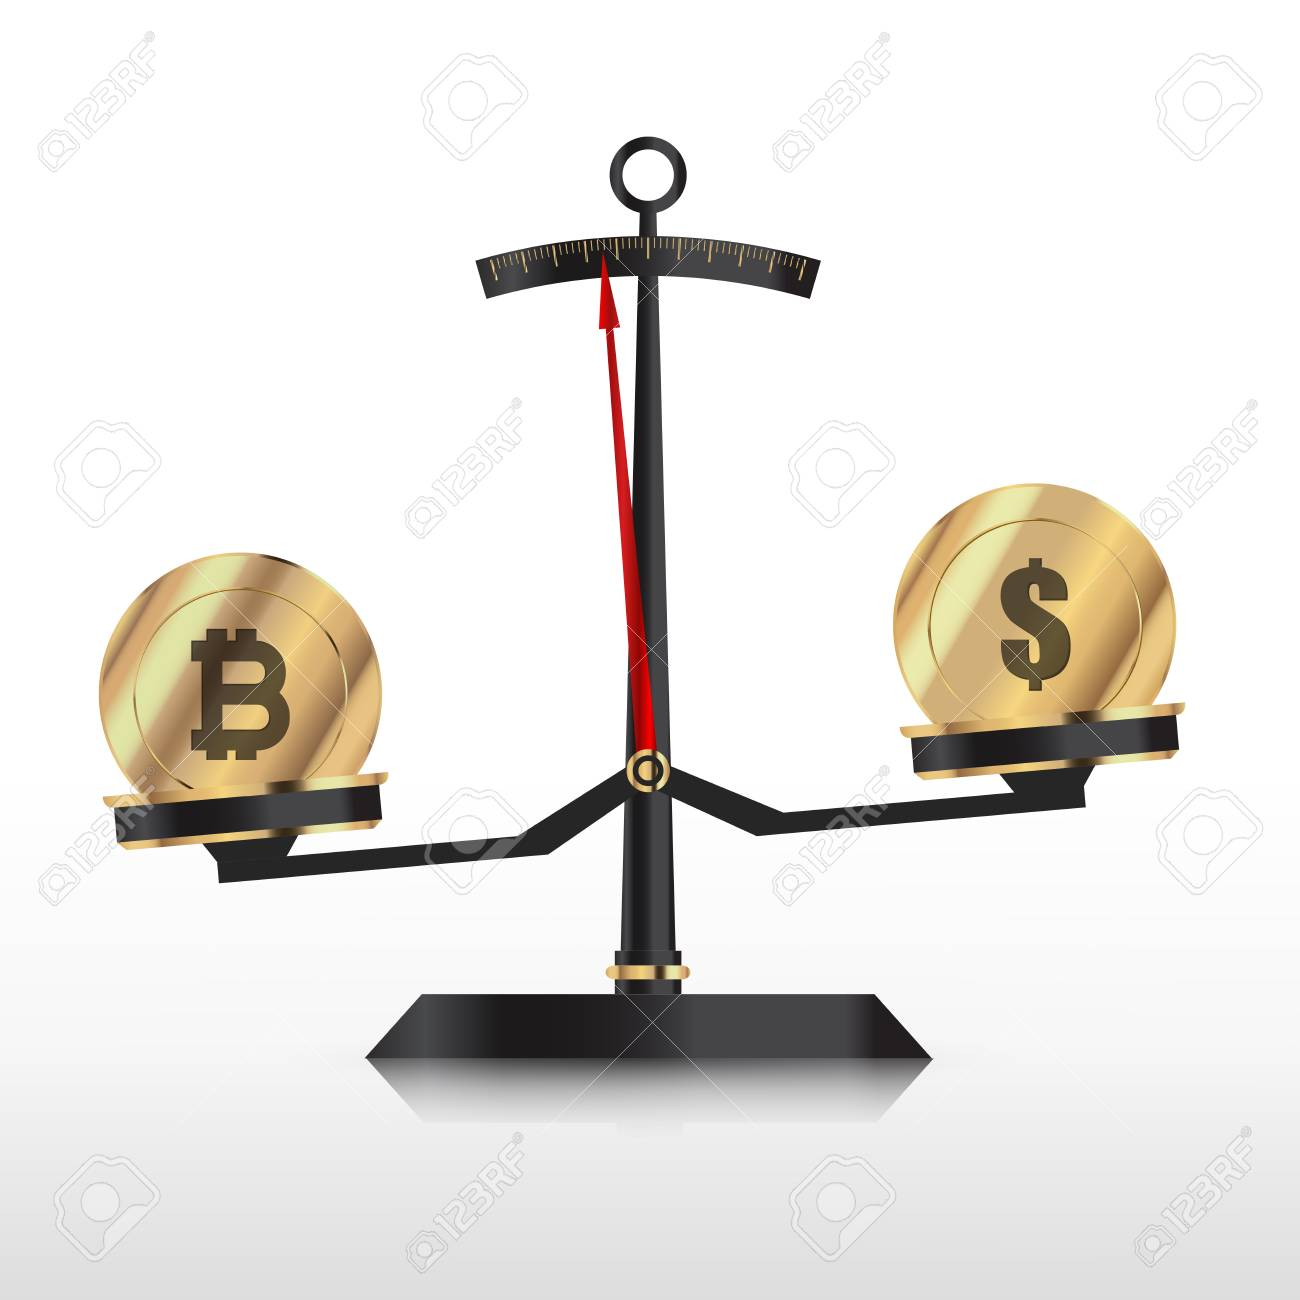 bitcoin and dollar sign on a weighing scale icon royalty free